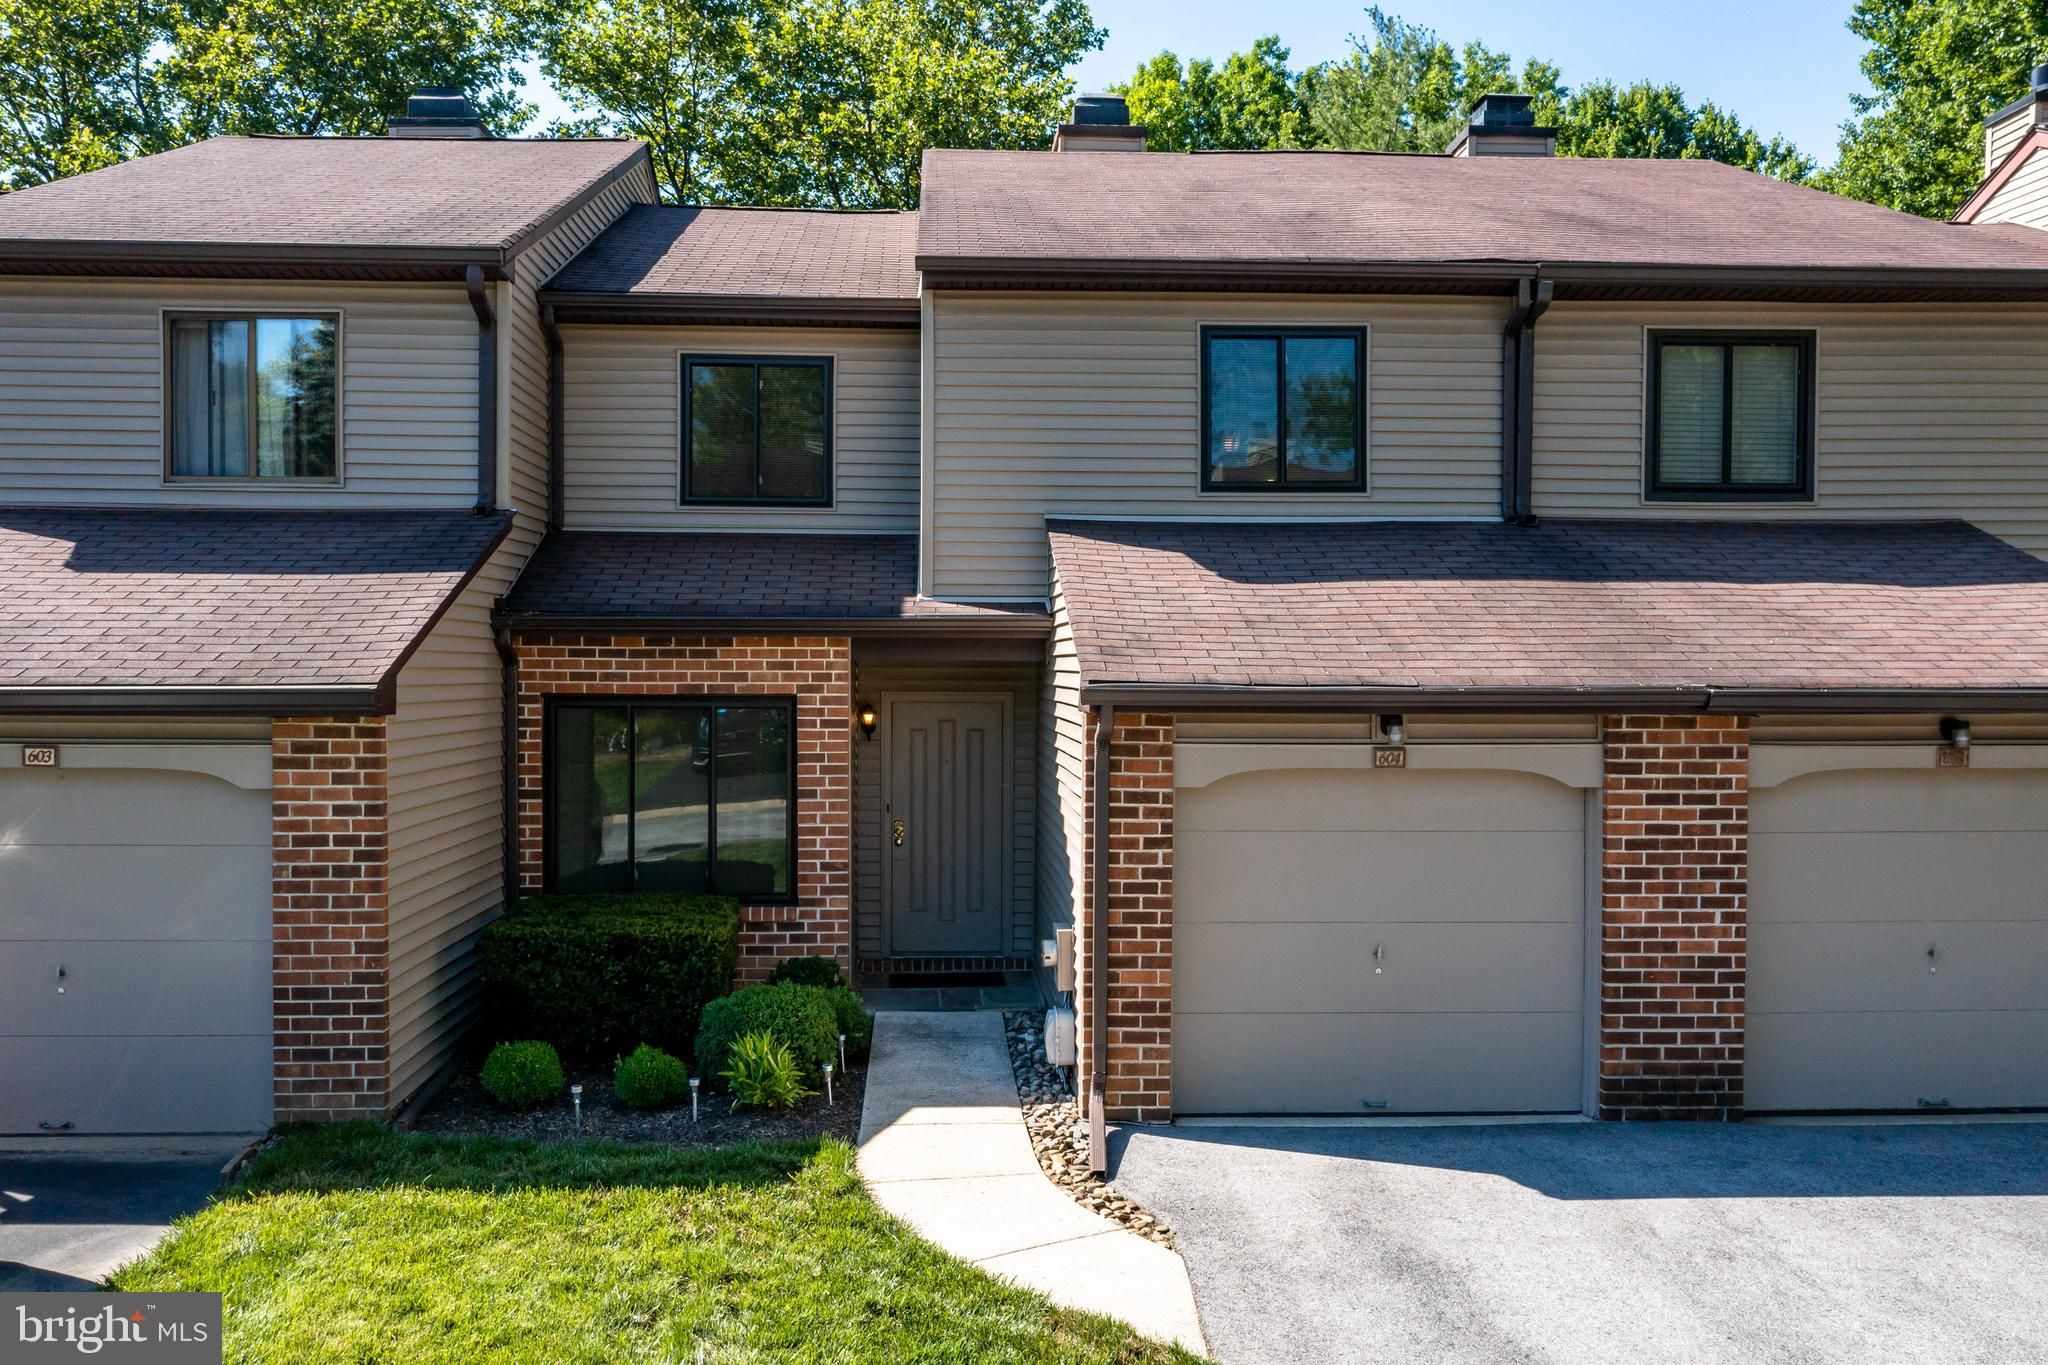 LOCATION-LOCATION-LOCATION!  Move right in to this 2 Bedroom, 2.5 Bathroom townhome in super-convenient-to-everything Chesterbrook.  Note:  3rd BEDROOM IS CURRENTLY CONFIGURED AS A DEN.  Prestigious Tredyffrin-Easttown School District.  The main level consists of a galley Kitchen (with Breakfast Area) a large, open Living Room and Dining Room area with a sliding door out to a private patio. Wood-burning fireplace and a Powder Room.  The second floor is comprised of Master Bedroom with en-suite Bathroom, second Bedroom, a spacious Den (which can be converted back to a 3rd bedroom), and a second full Bathroom complete with washer and dryer.  Full Basement with (preventive), lifetime-guaranteed waterproofing system.  Attached one-car Garage.  Almost new HVAC, driveway, windows, slider, vinyl siding, gutters, and more!  Close to Wilson Farm Park, Valley Forge Park and Gateway Shopping Center (with Trader Joe's!). The King of Prussia Mall is less than ten minutes away. Enjoy easy access to Routes 202, 76, 422, the PA Turnpike and all that the Main Line has to offer.  Schedule your tour today!